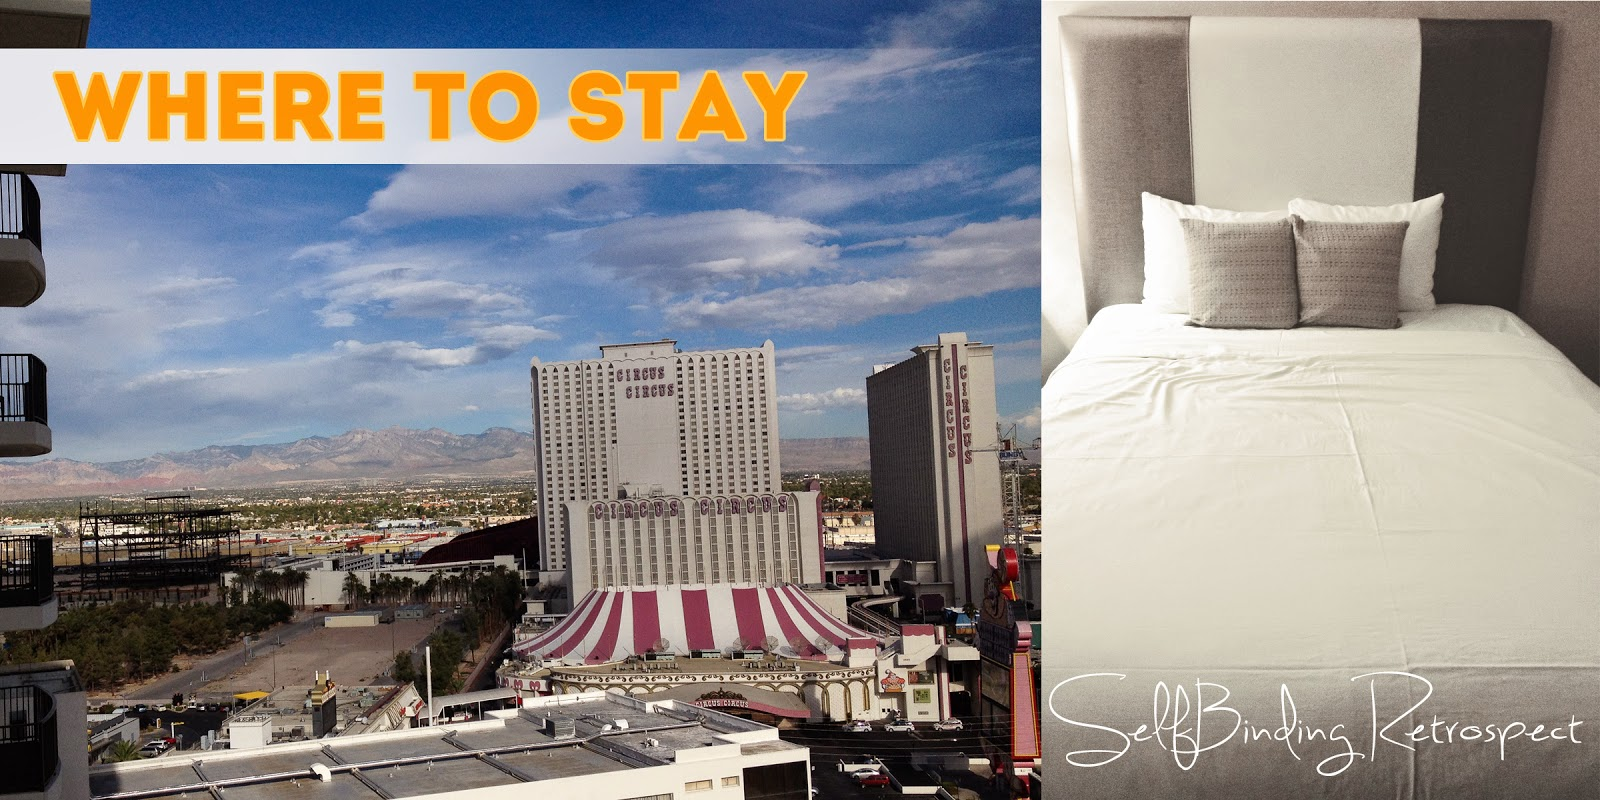 Where To Stay - The Sober Girl's Guide To Las Vegas - SelfBinding Retrospect by Alanna Rusnak